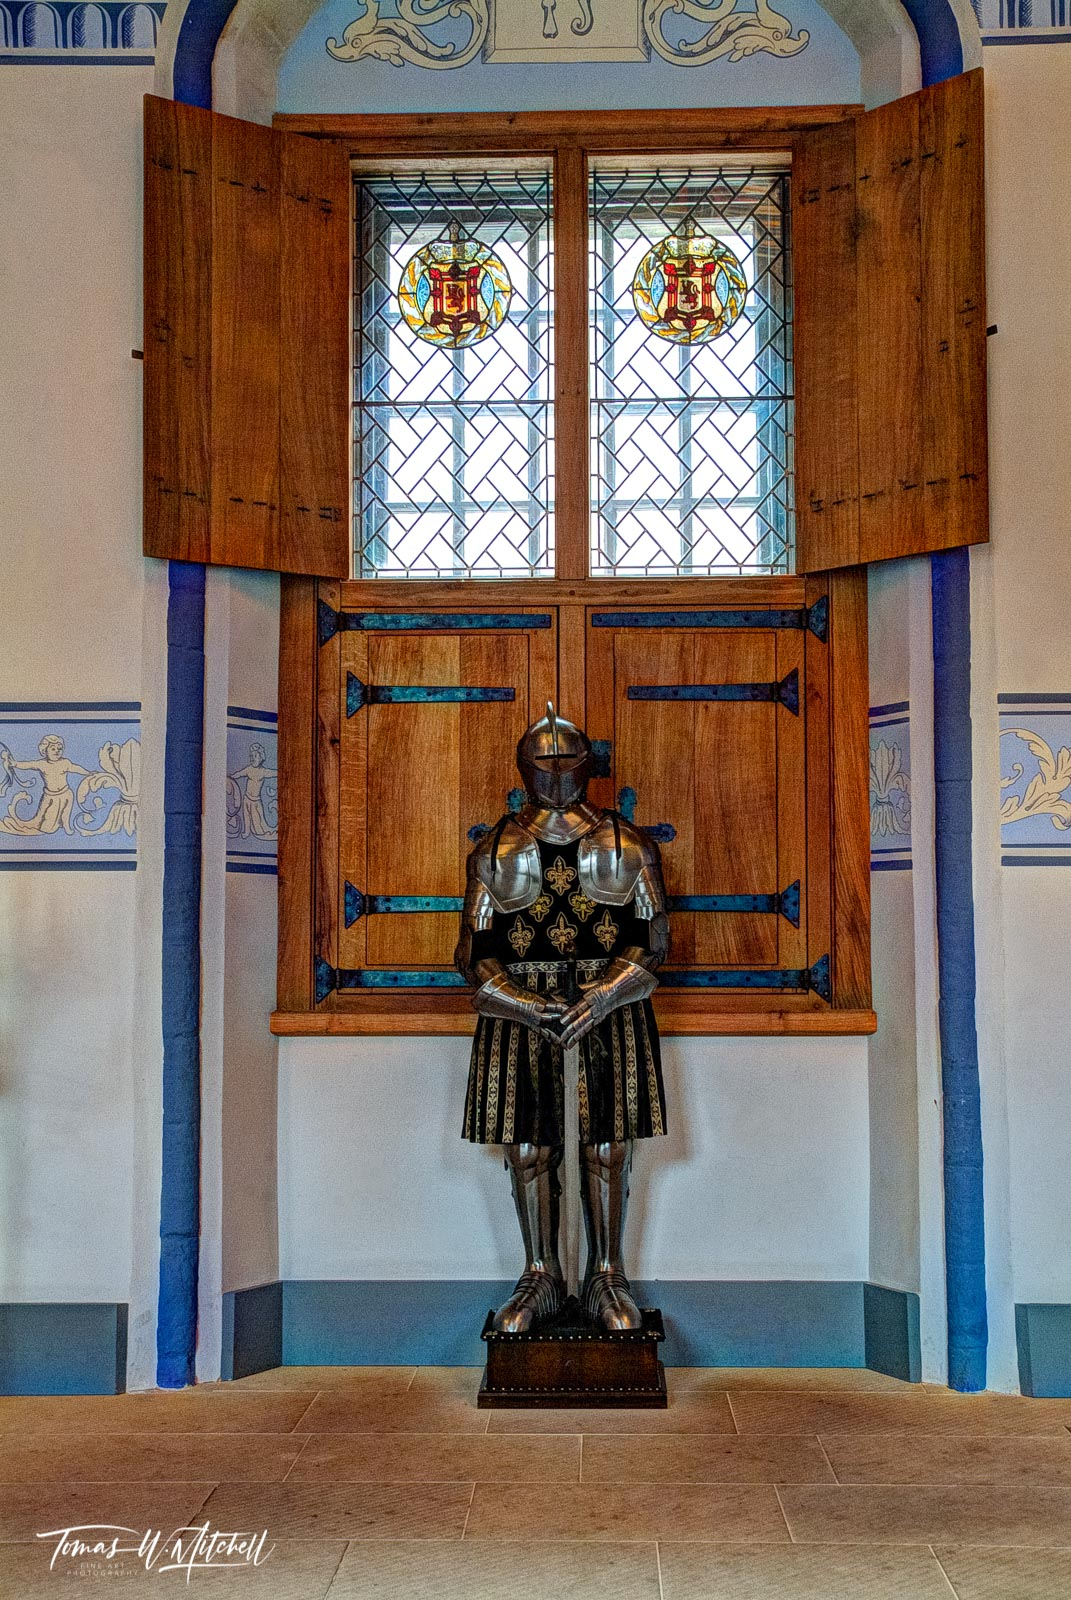 limited edition, fine art, prints, stirling, scotland, castle, armor, window, wooden shutters, blue trim, black, gold, tunic, photograph, knight, photo